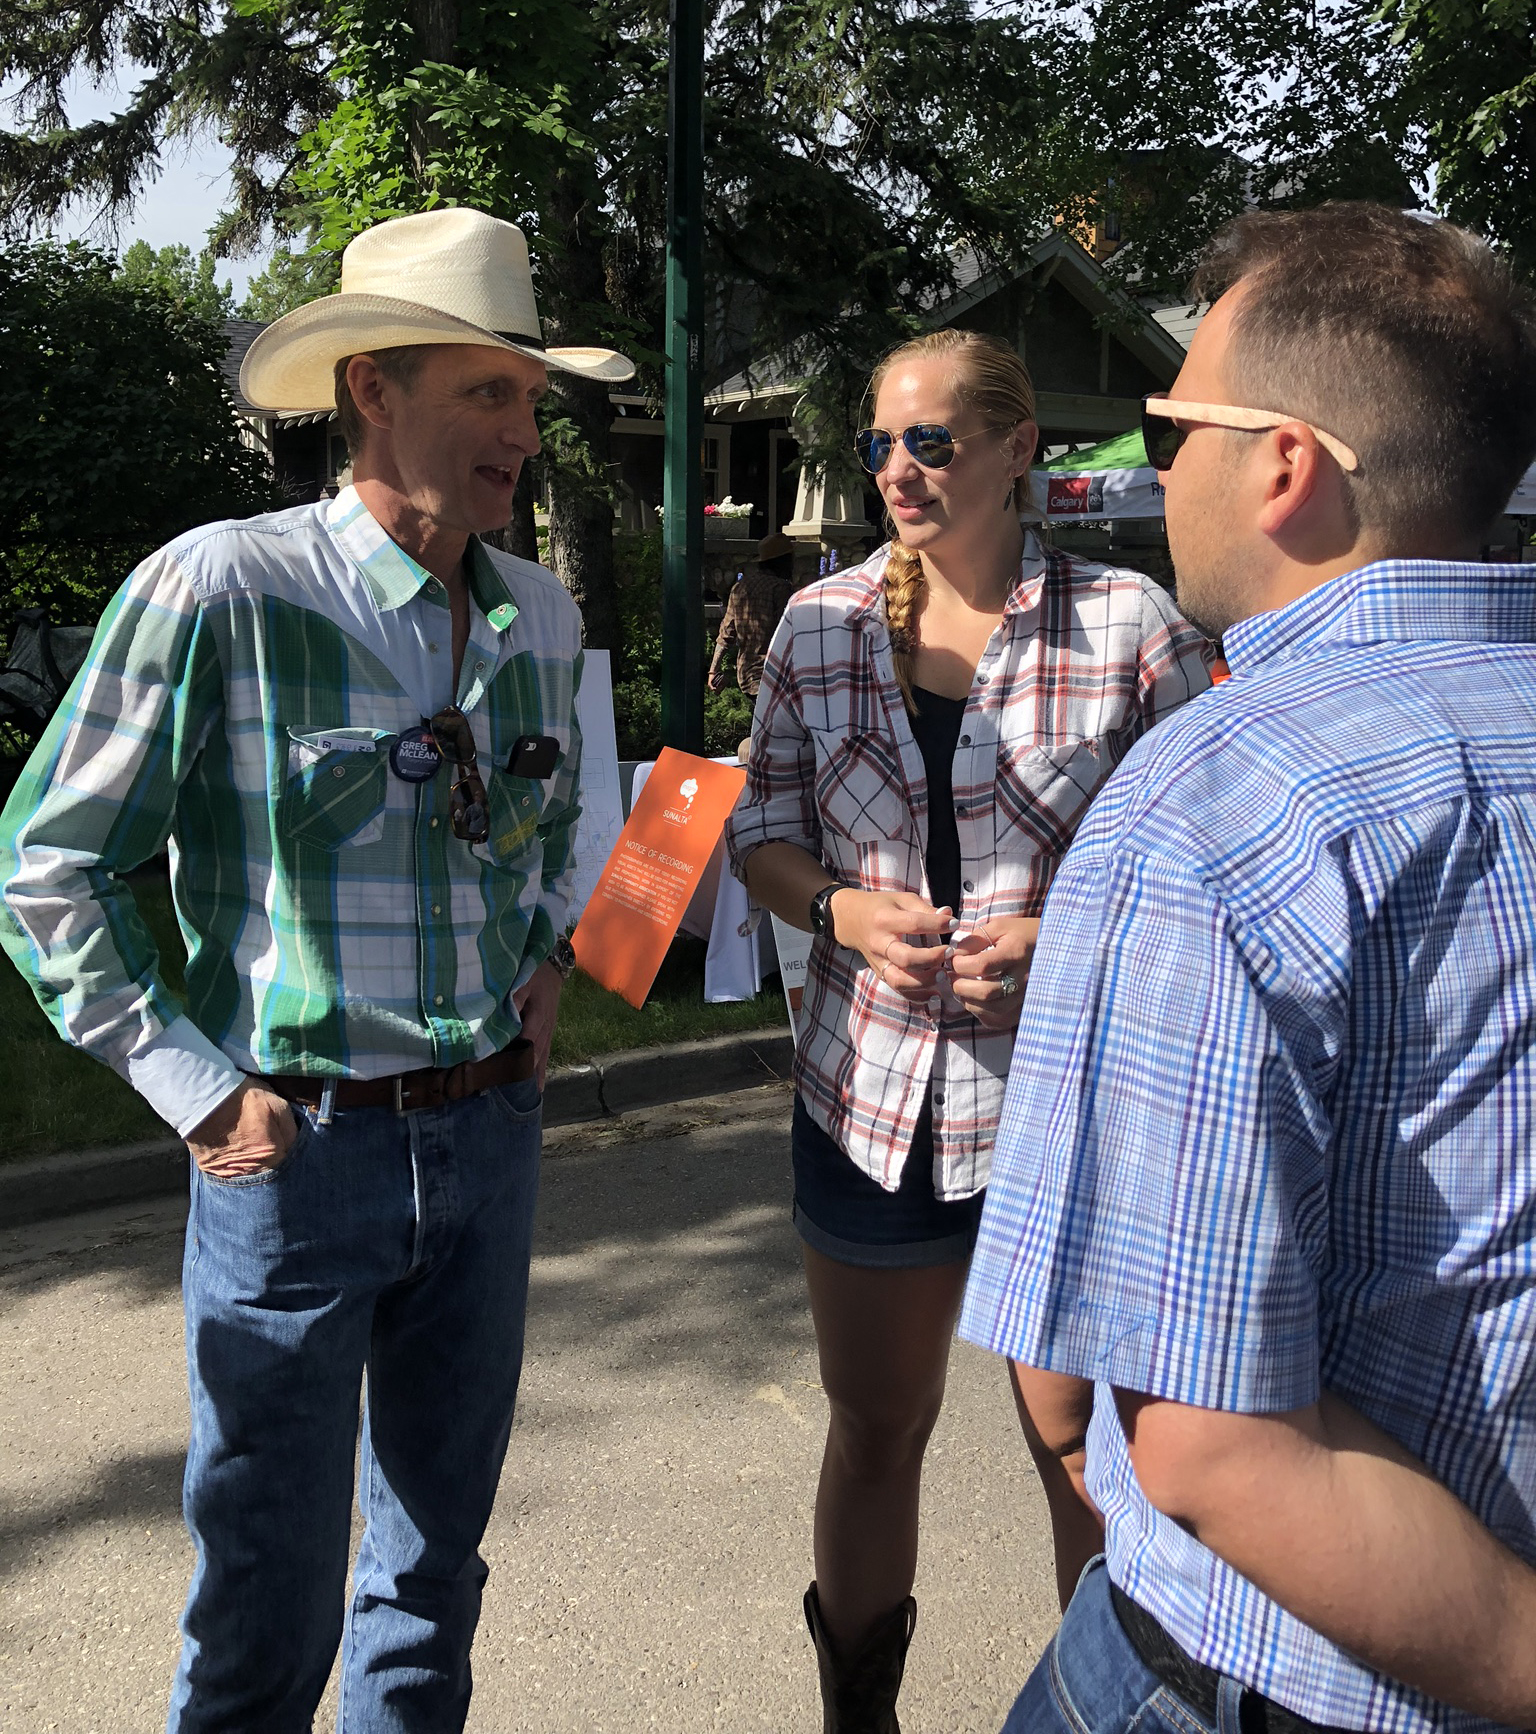 I love how our communities come together for neighbourhood Stampede events.